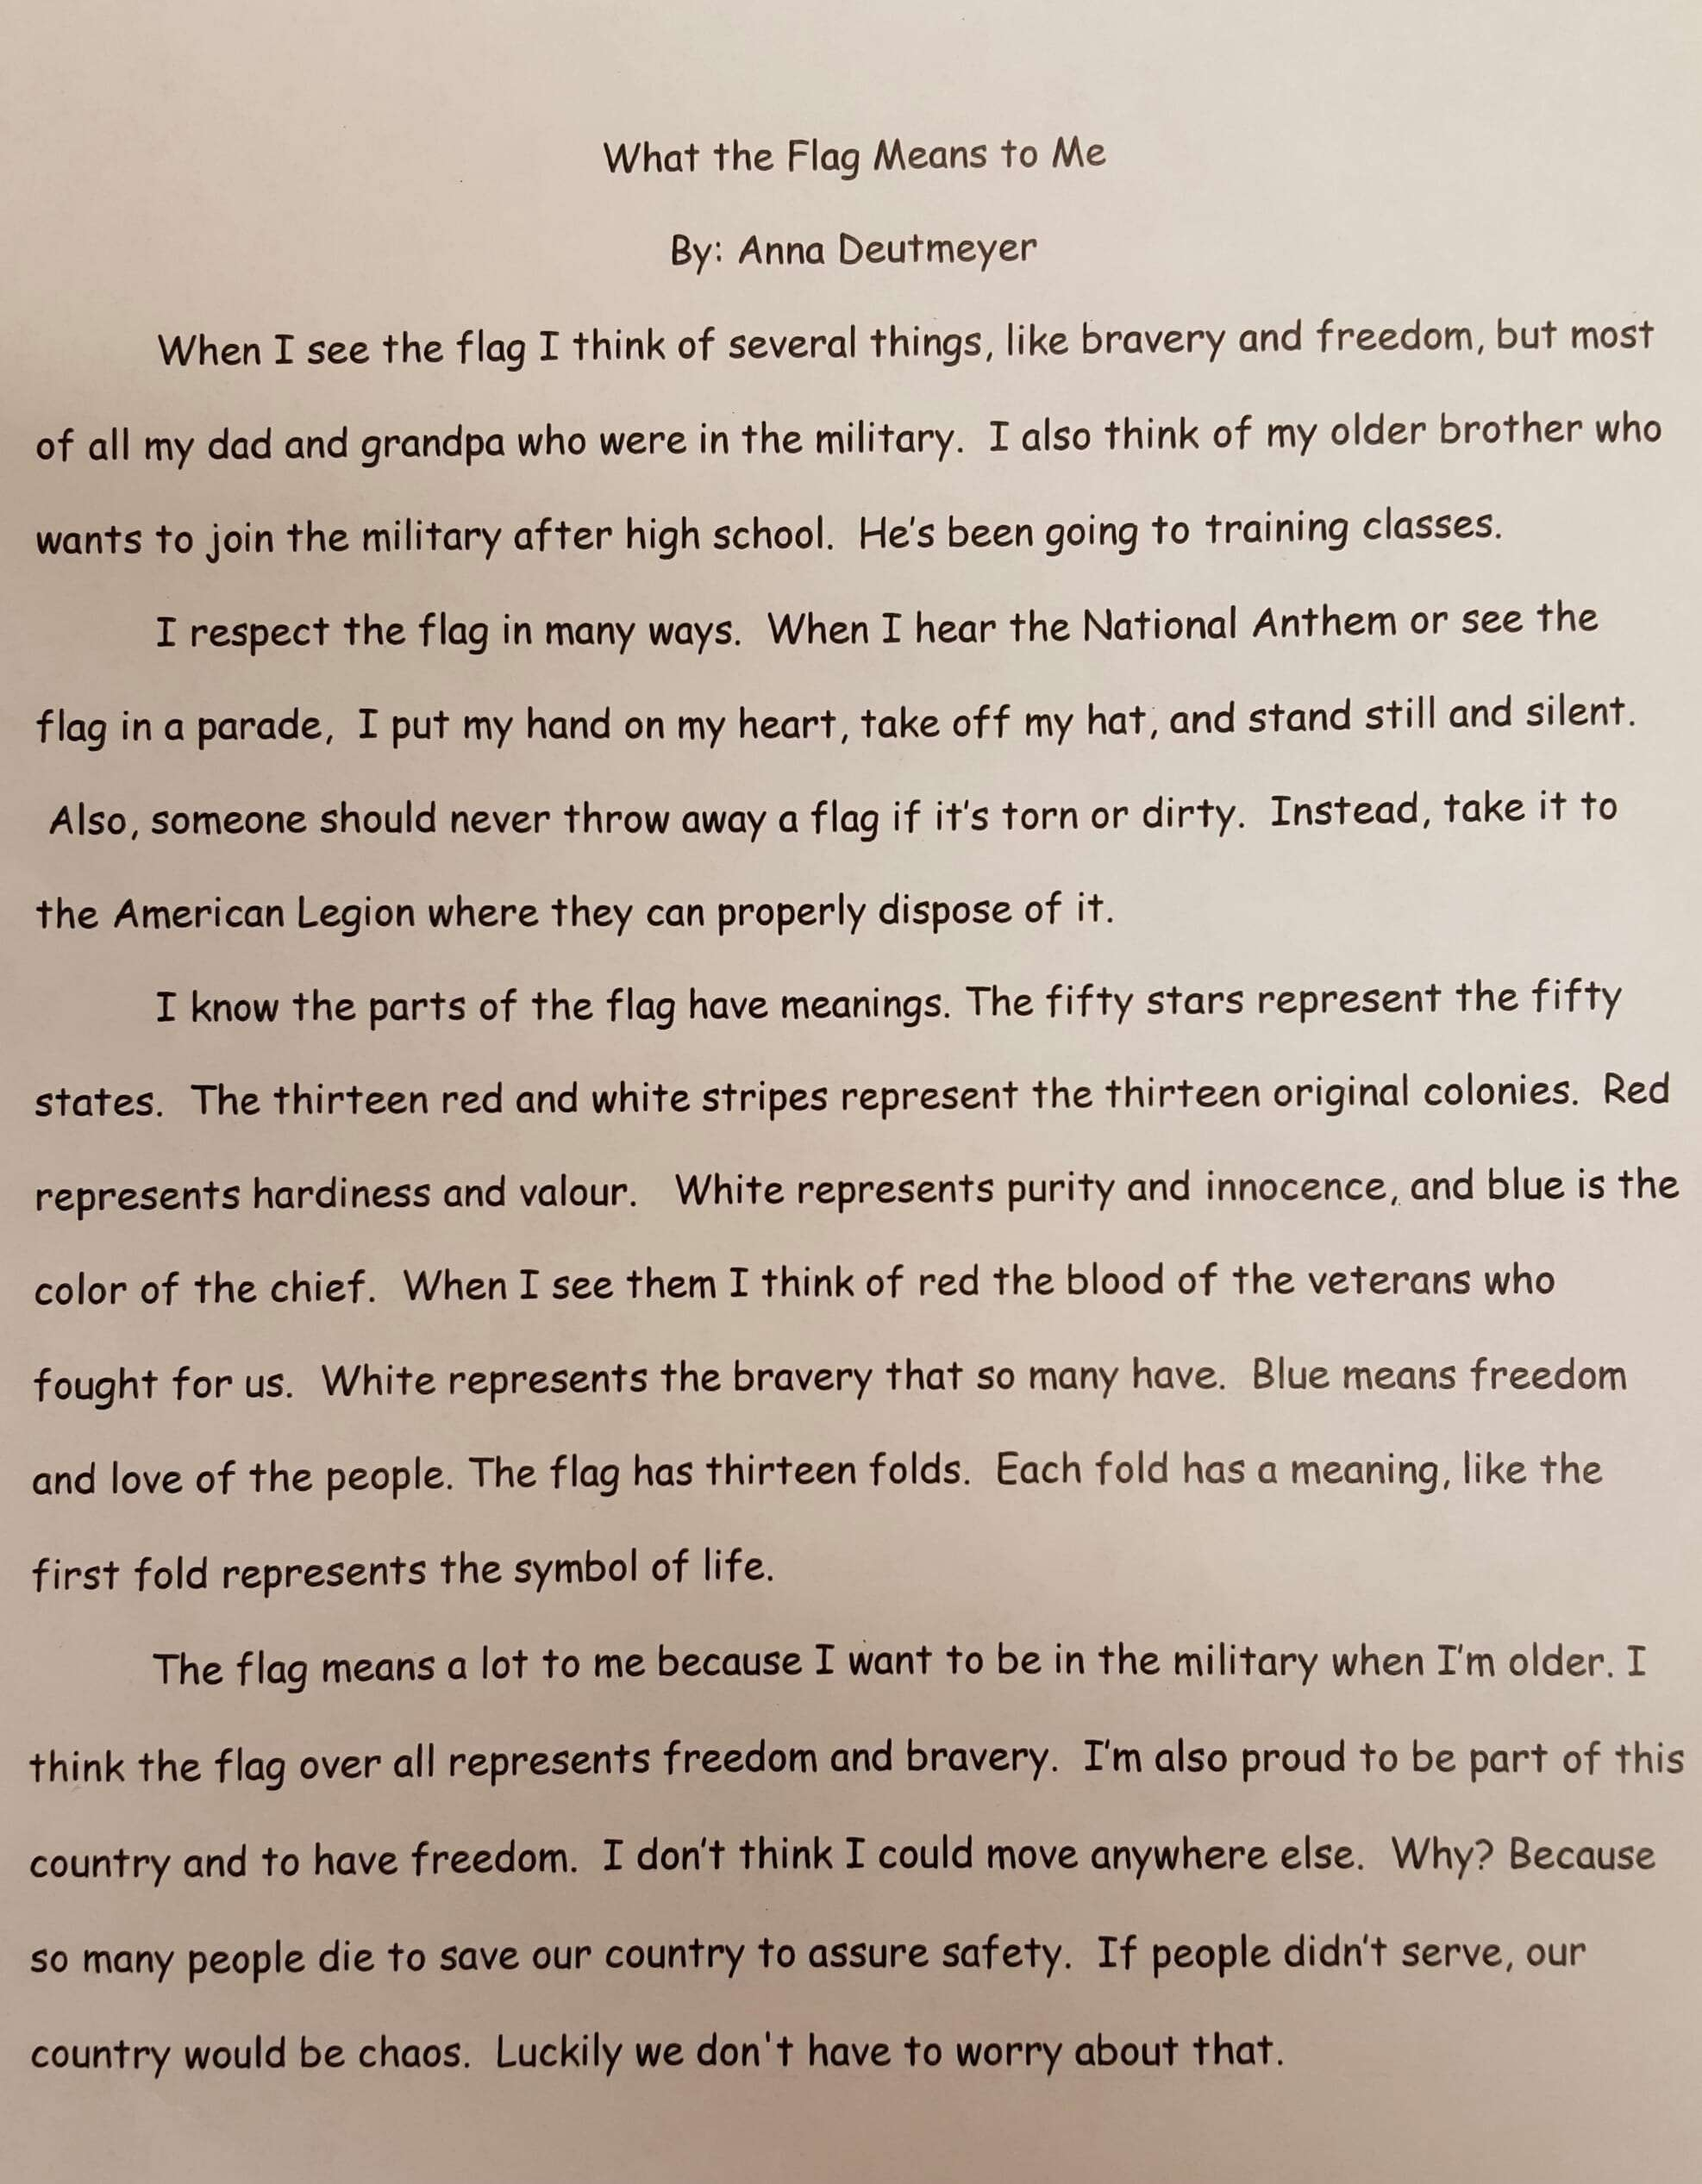 essay on bravery maquoketa valley th grader wins state flag essay maquoketa valley th grader wins state flag essay contest mix 20160321 155714 1